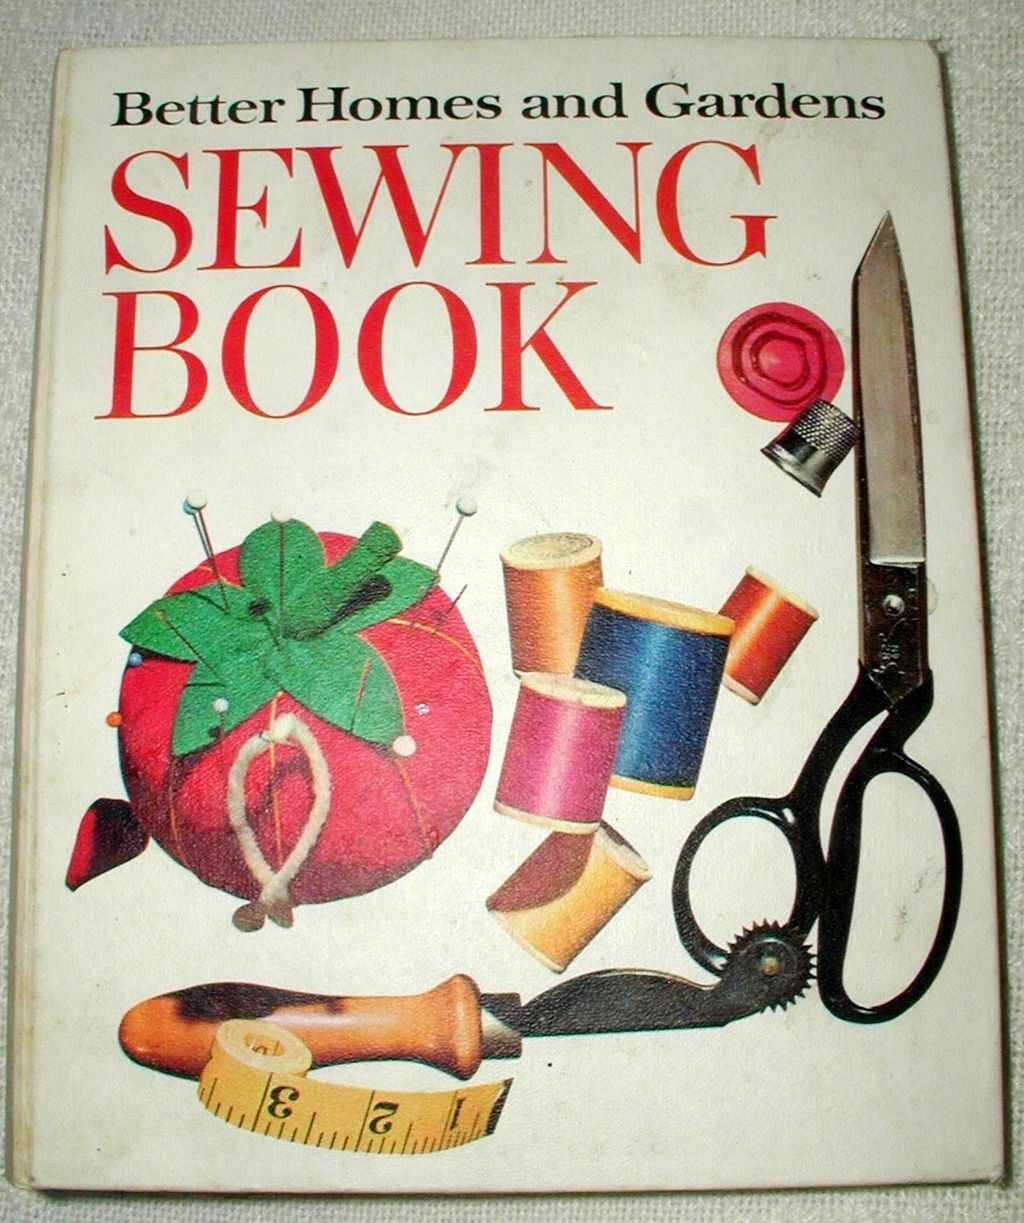 Better homes and gardens sewing book 1970 edition from Better homes and gardens gardener